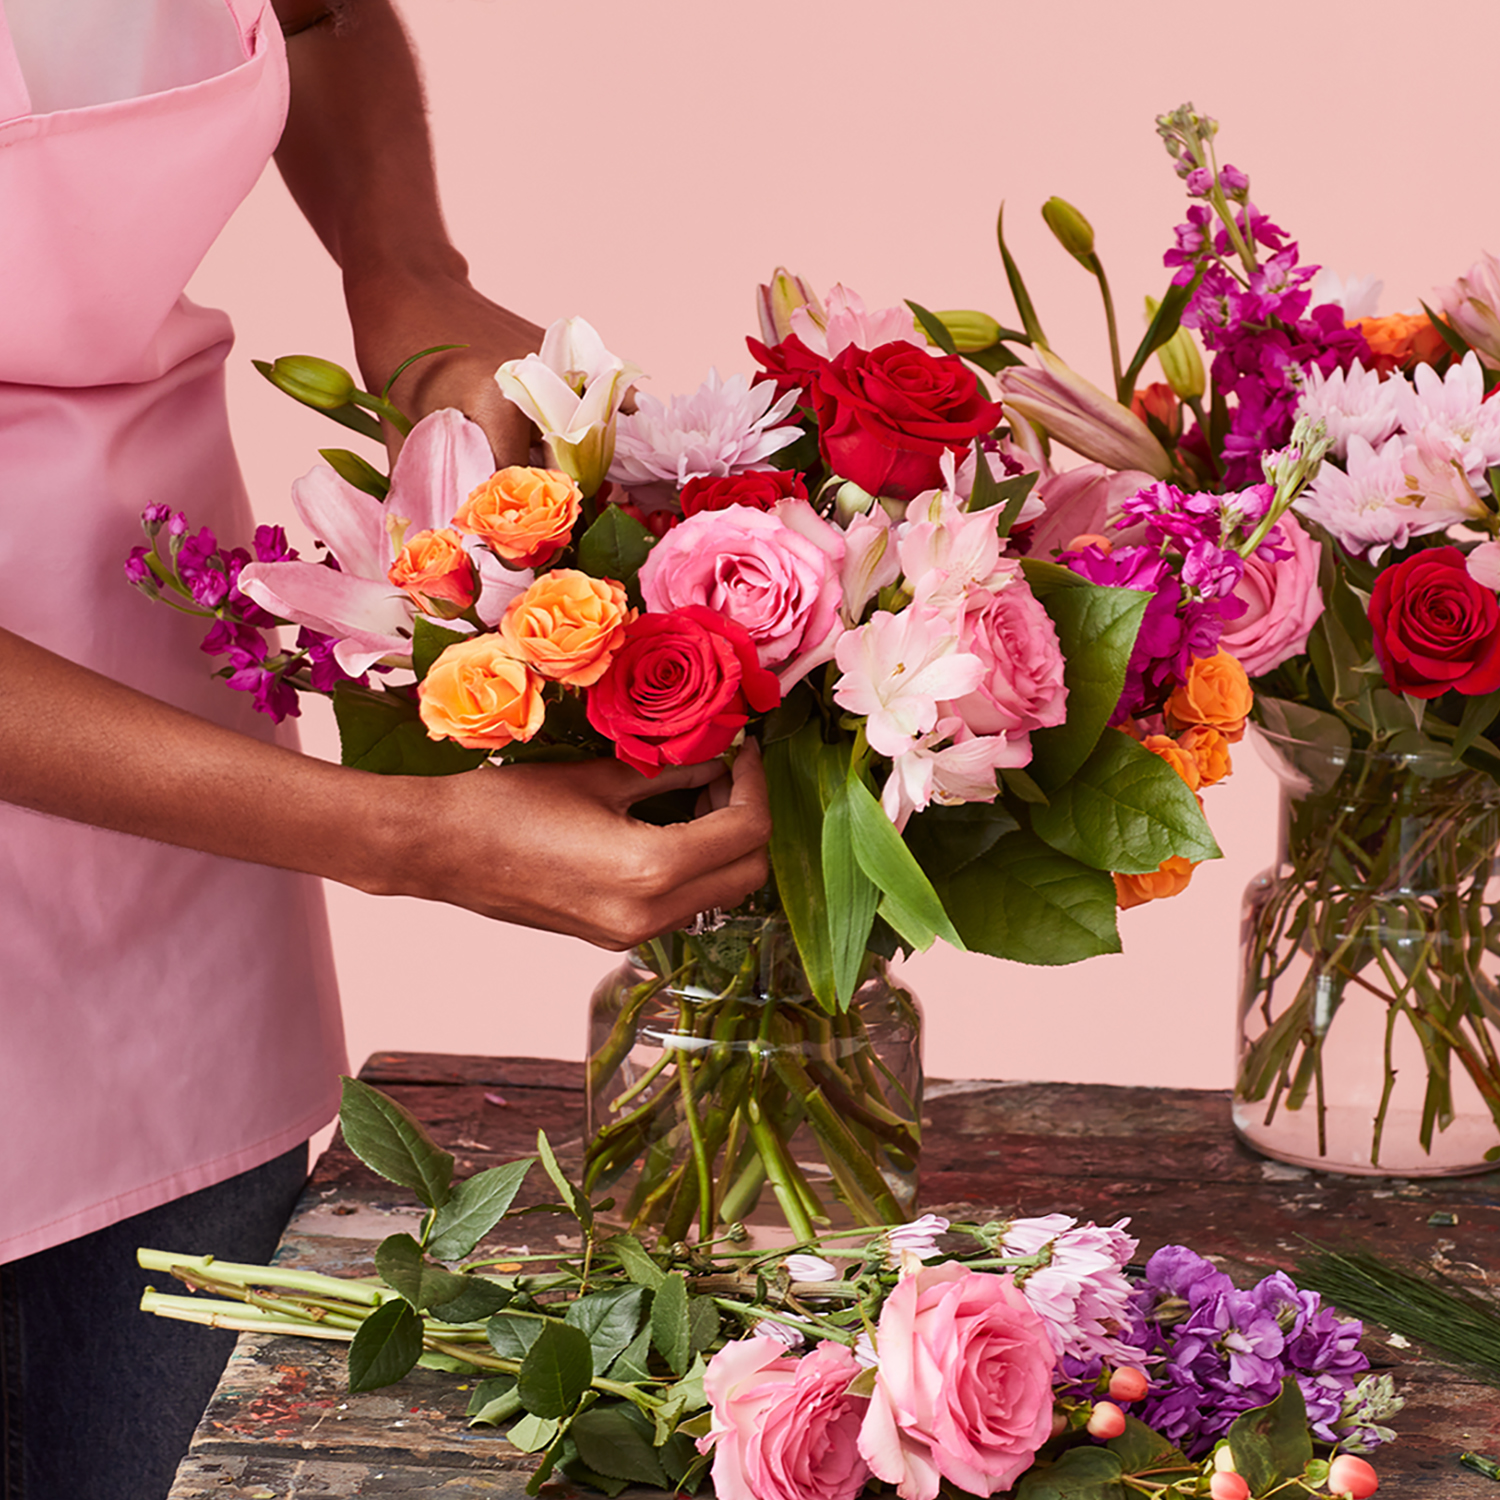 Keep Things Classic And Simple By Ordering The Best Valentine's Day Gifts From FTD